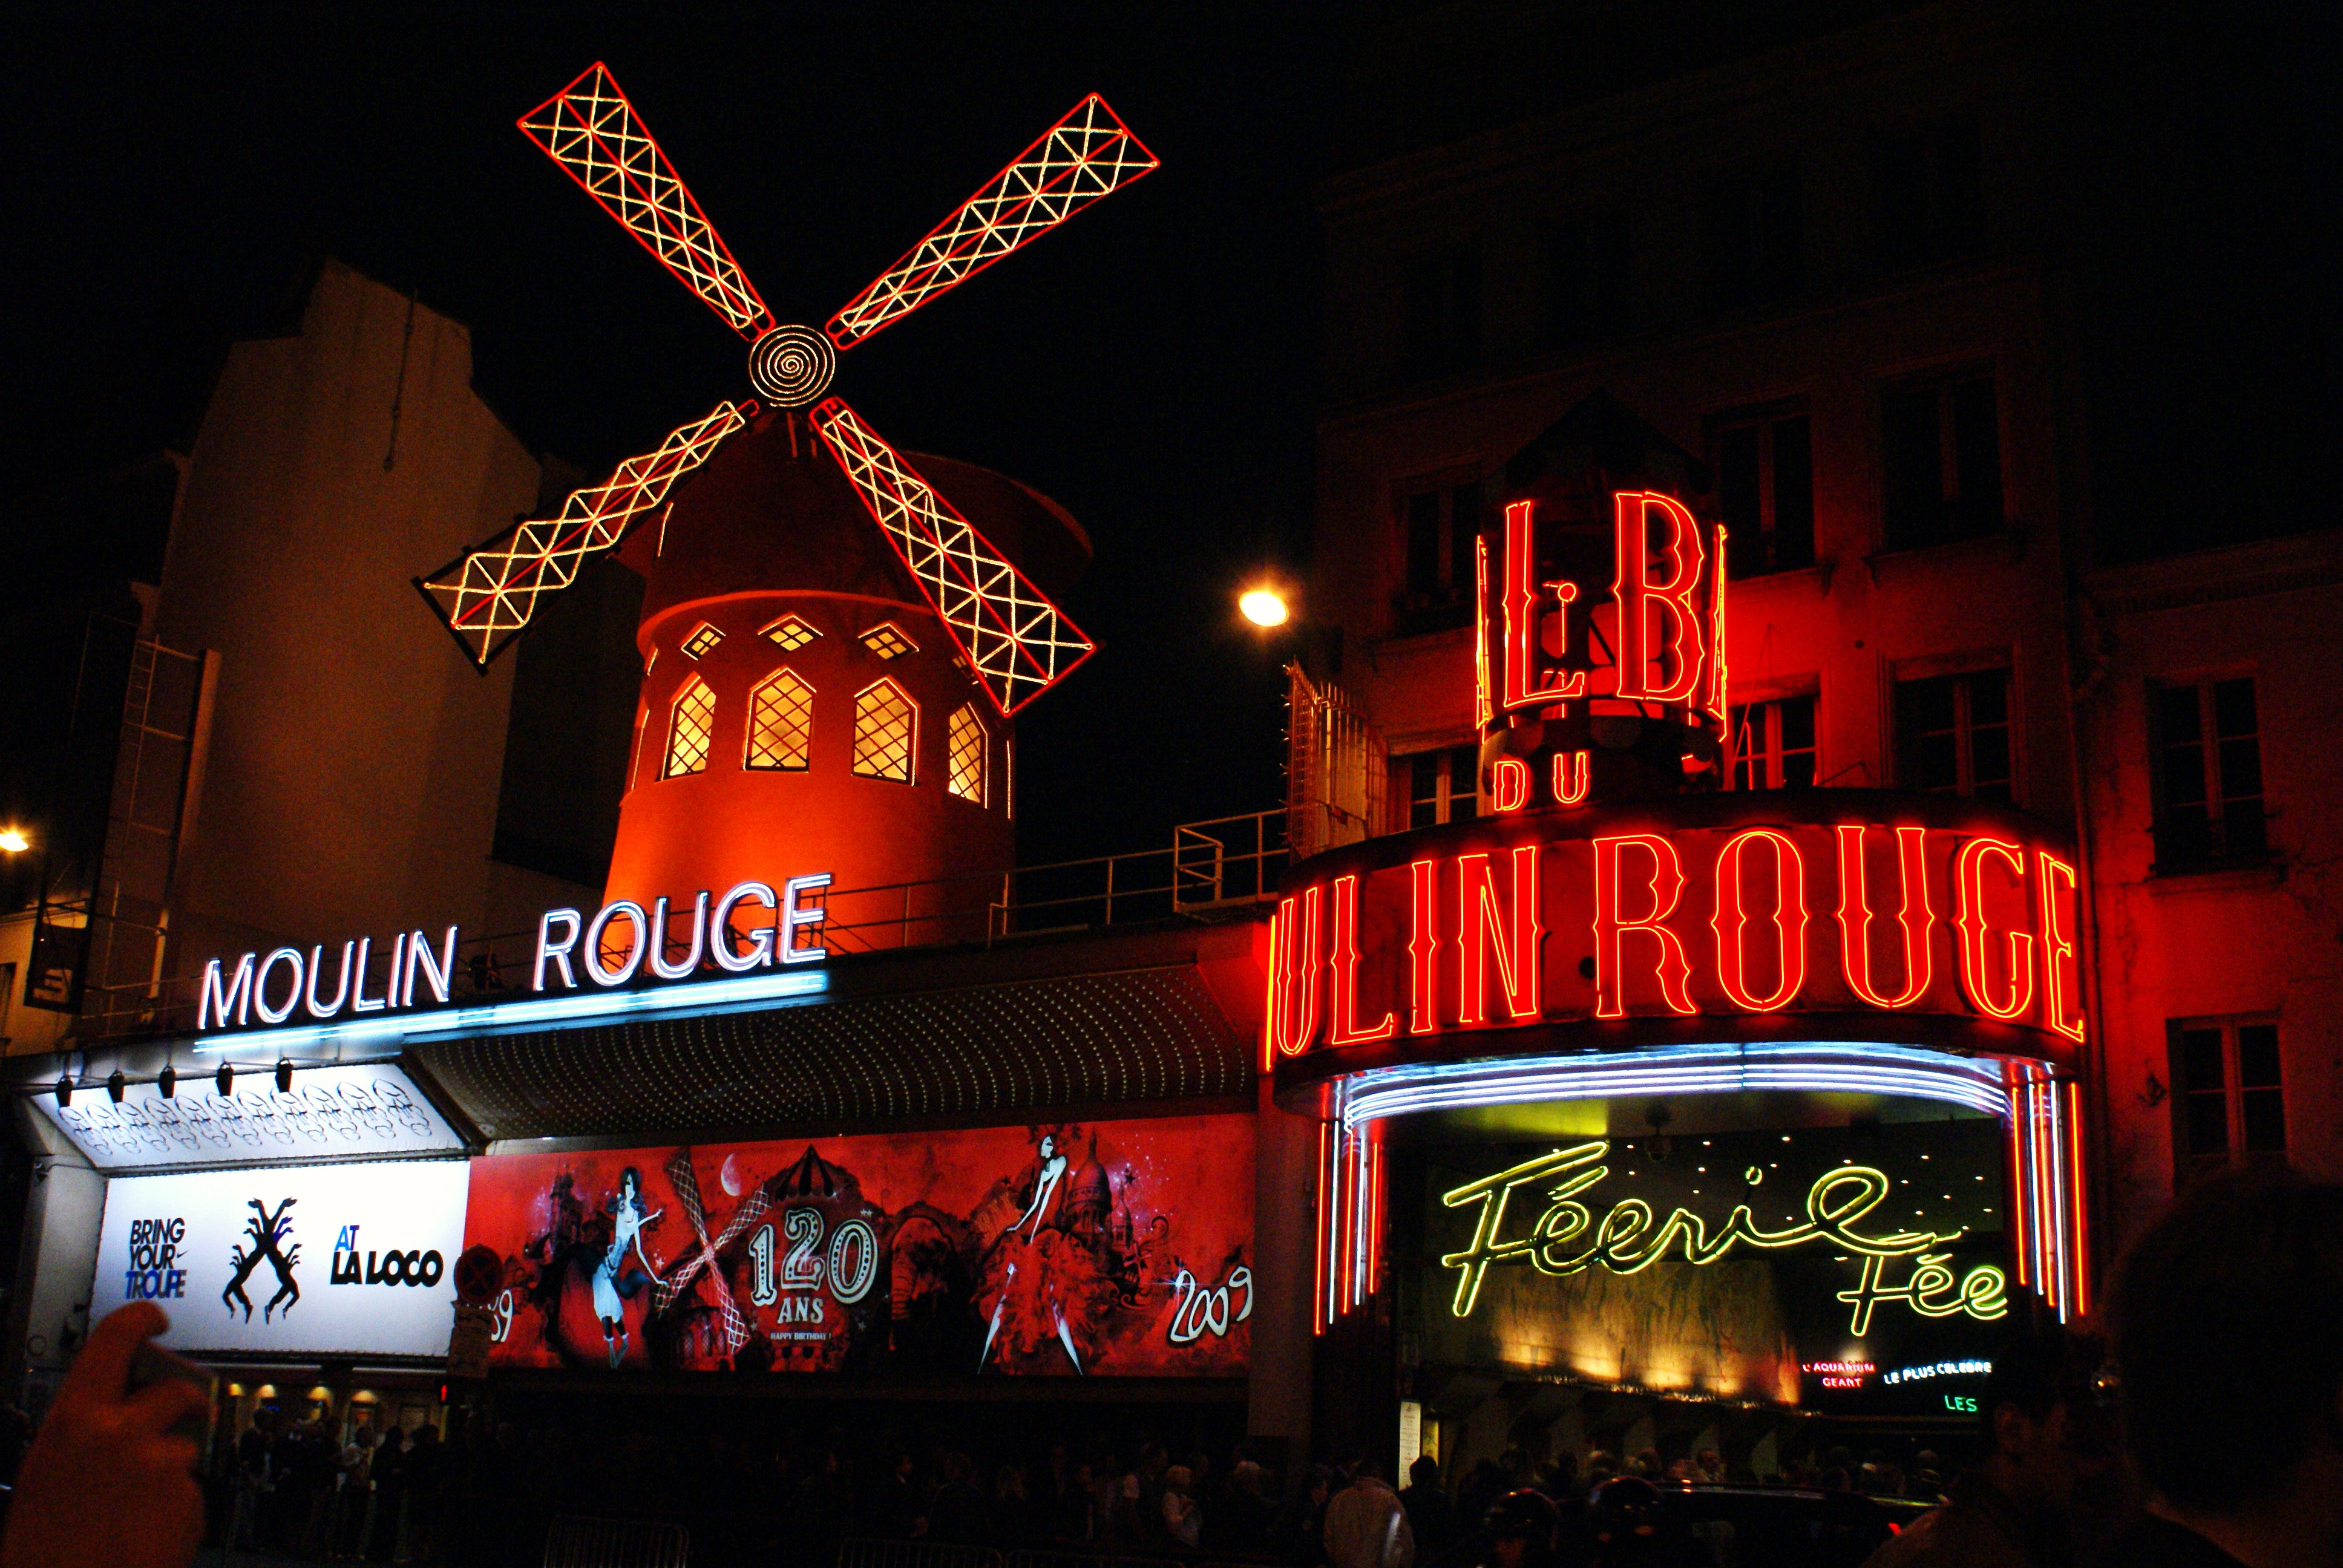 File:Moulin-Rouge01.JPG - Wikimedia Commons